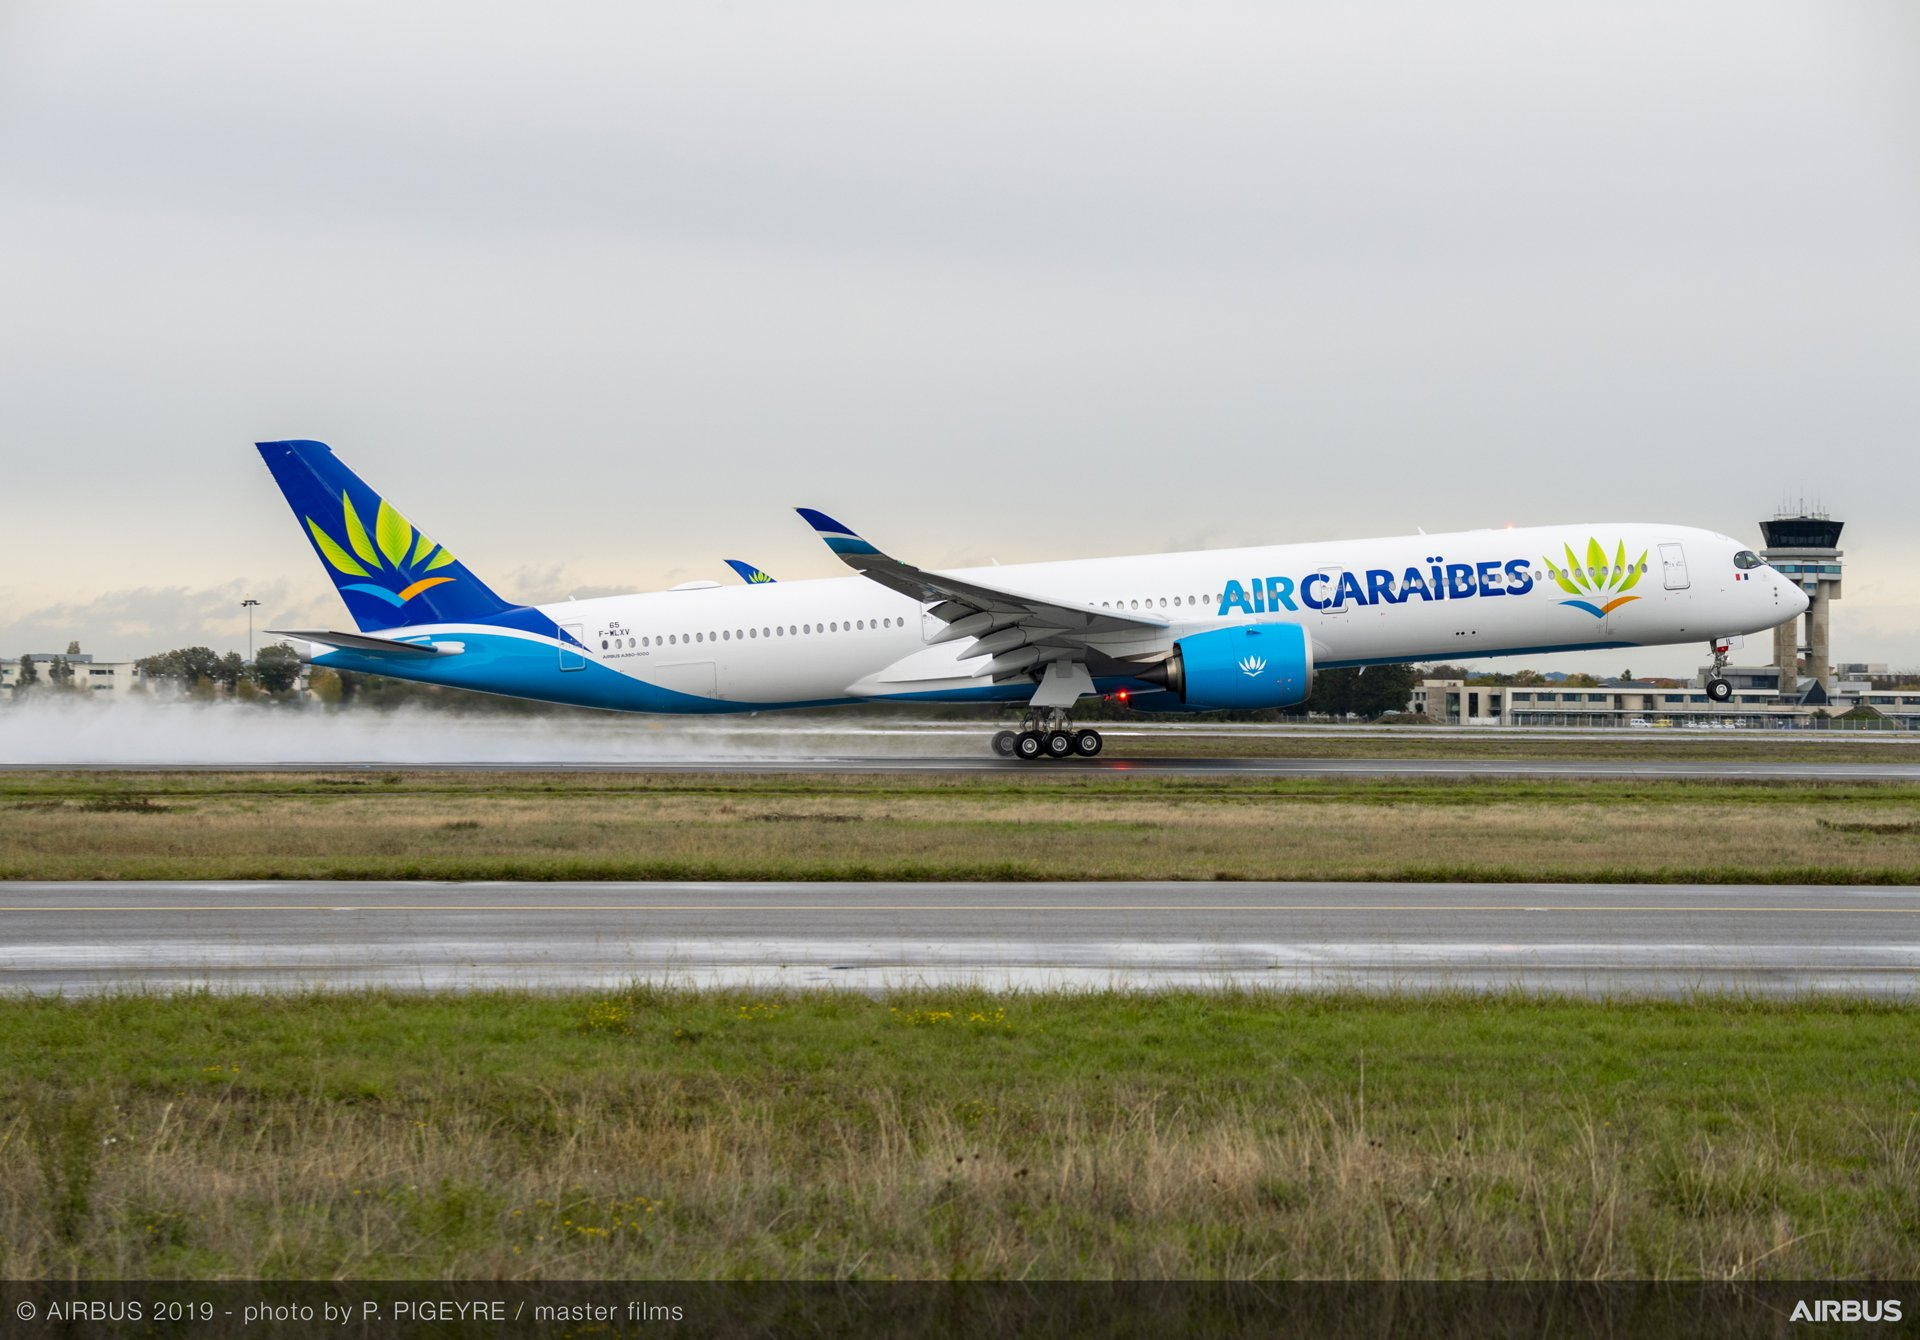 First Airbus A350-1000 joins Air Caraibes' fleet